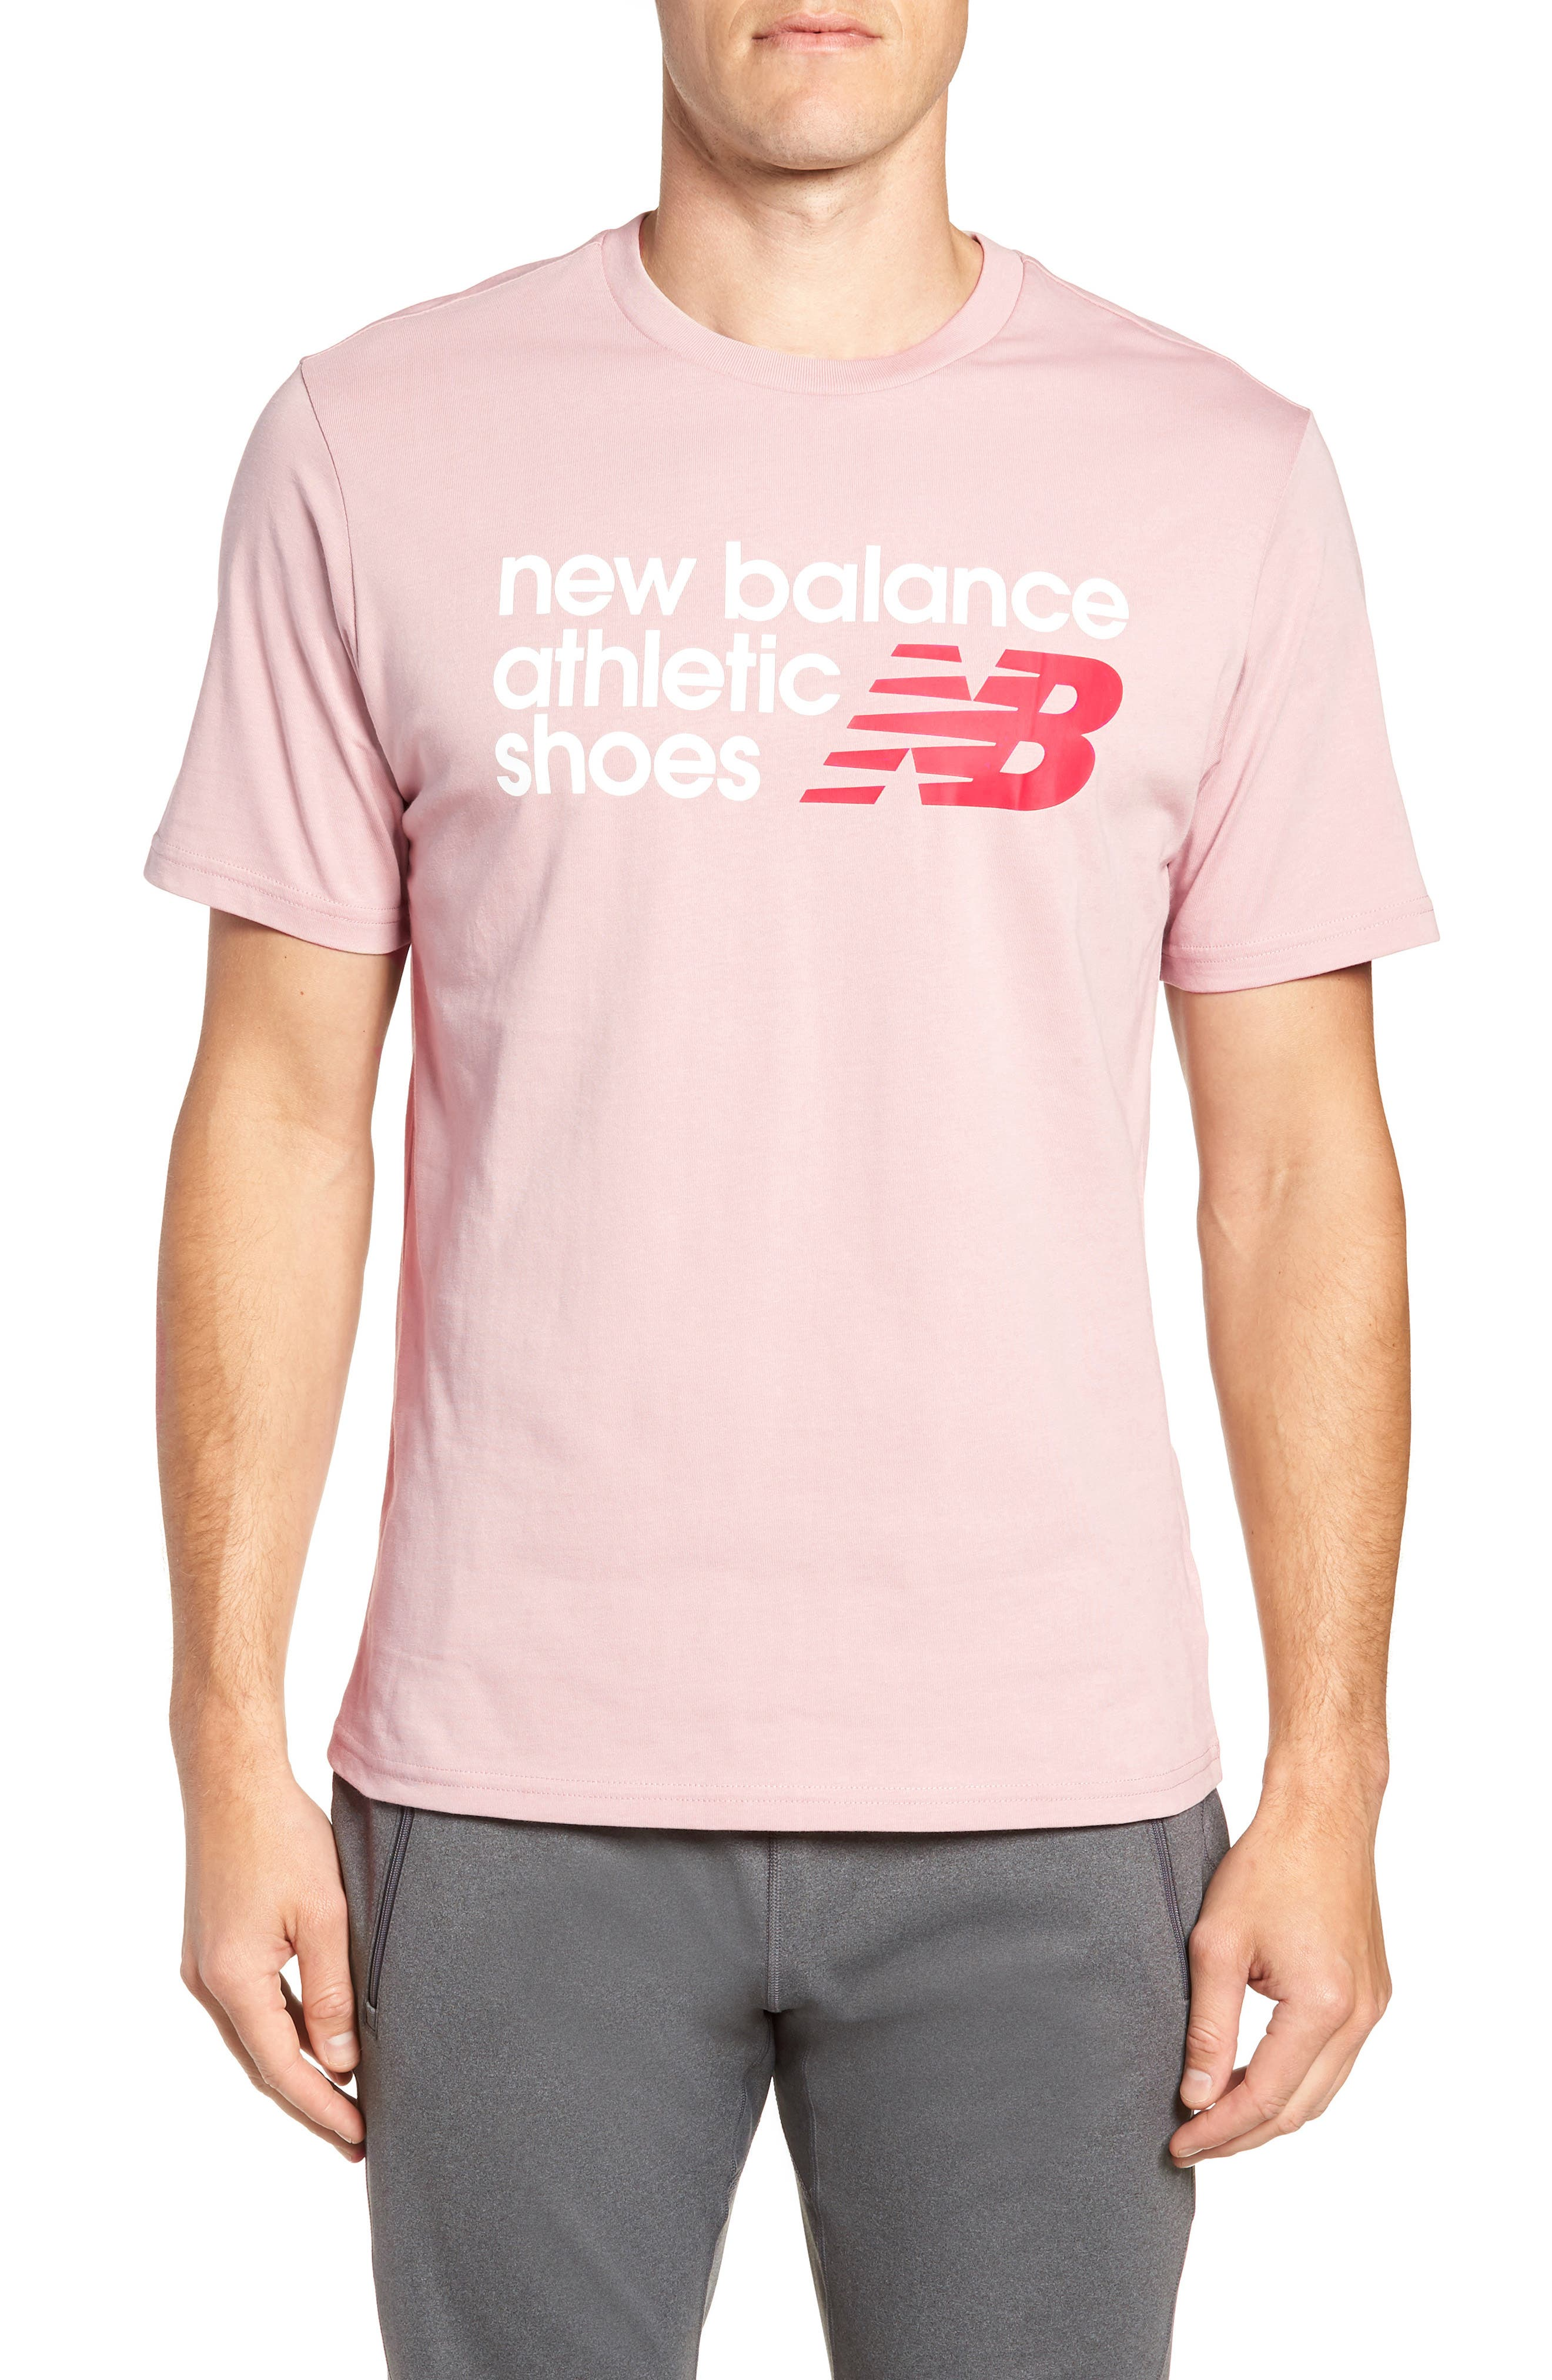 3a39ed6e Men's New Balance T-Shirts, Tank Tops, & Graphic Tees   Nordstrom